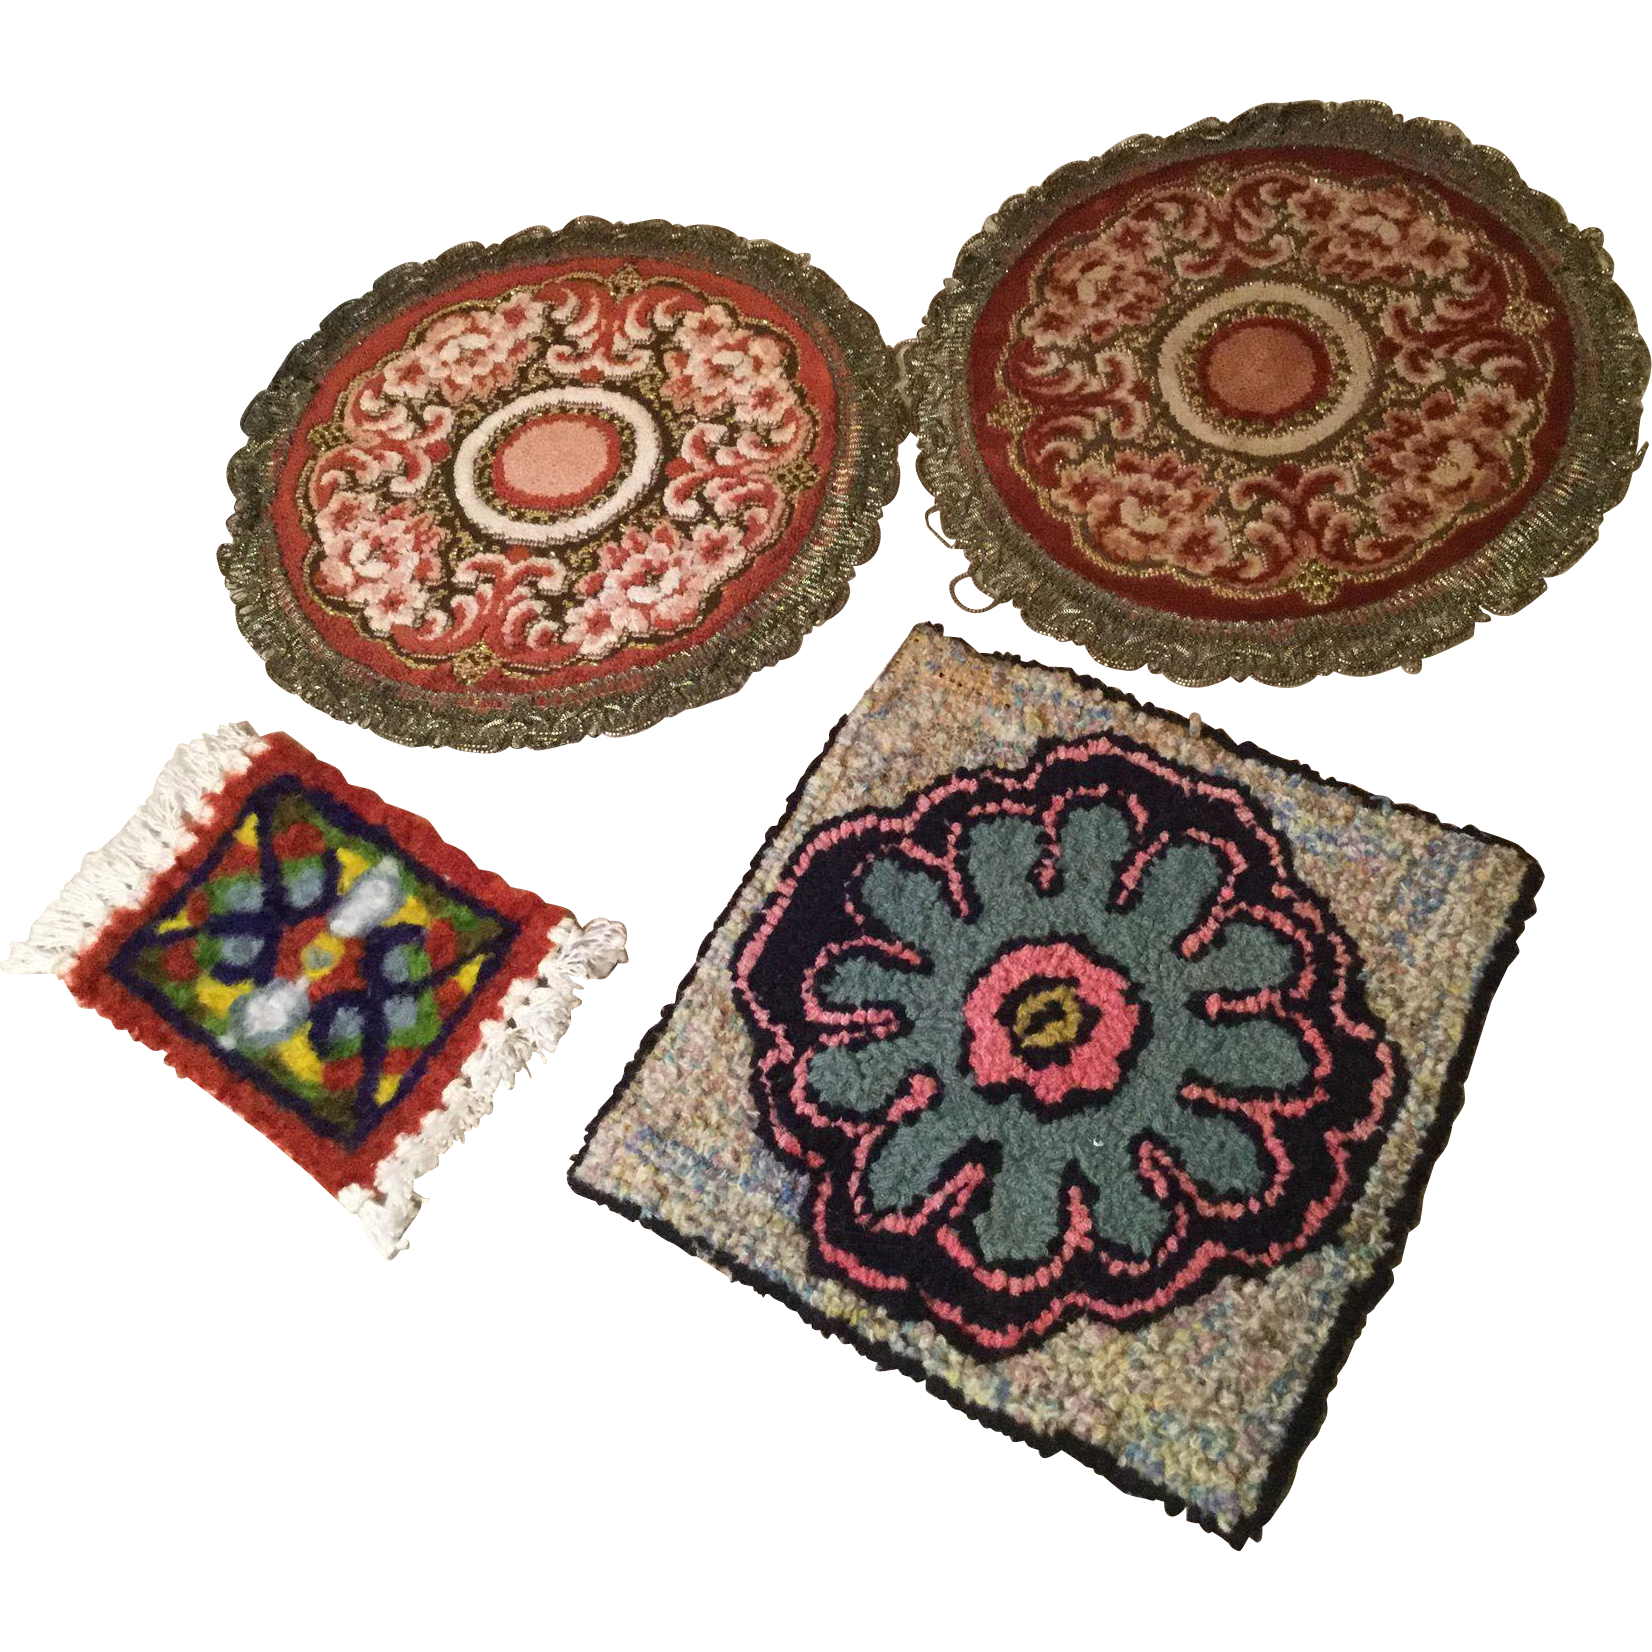 4 Vintage Doll House rugs